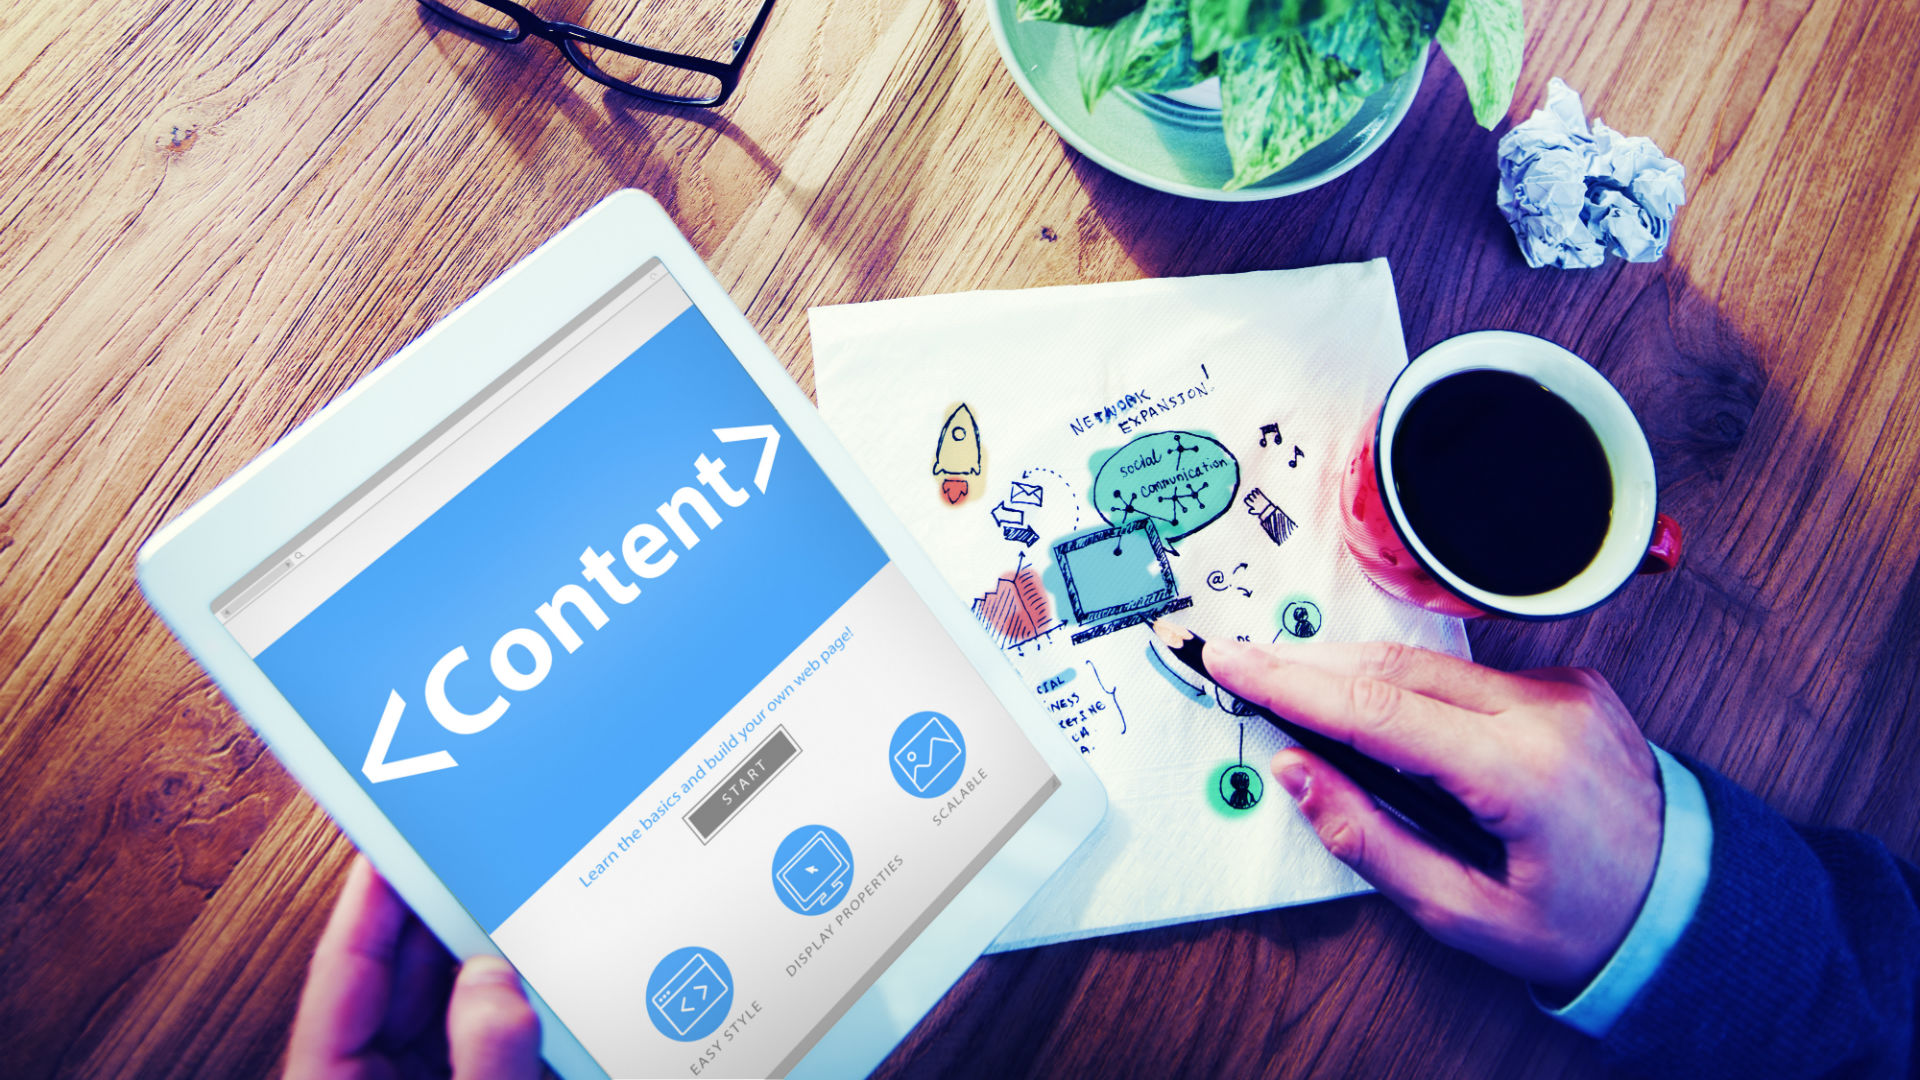 content-planning-web-ss-1920